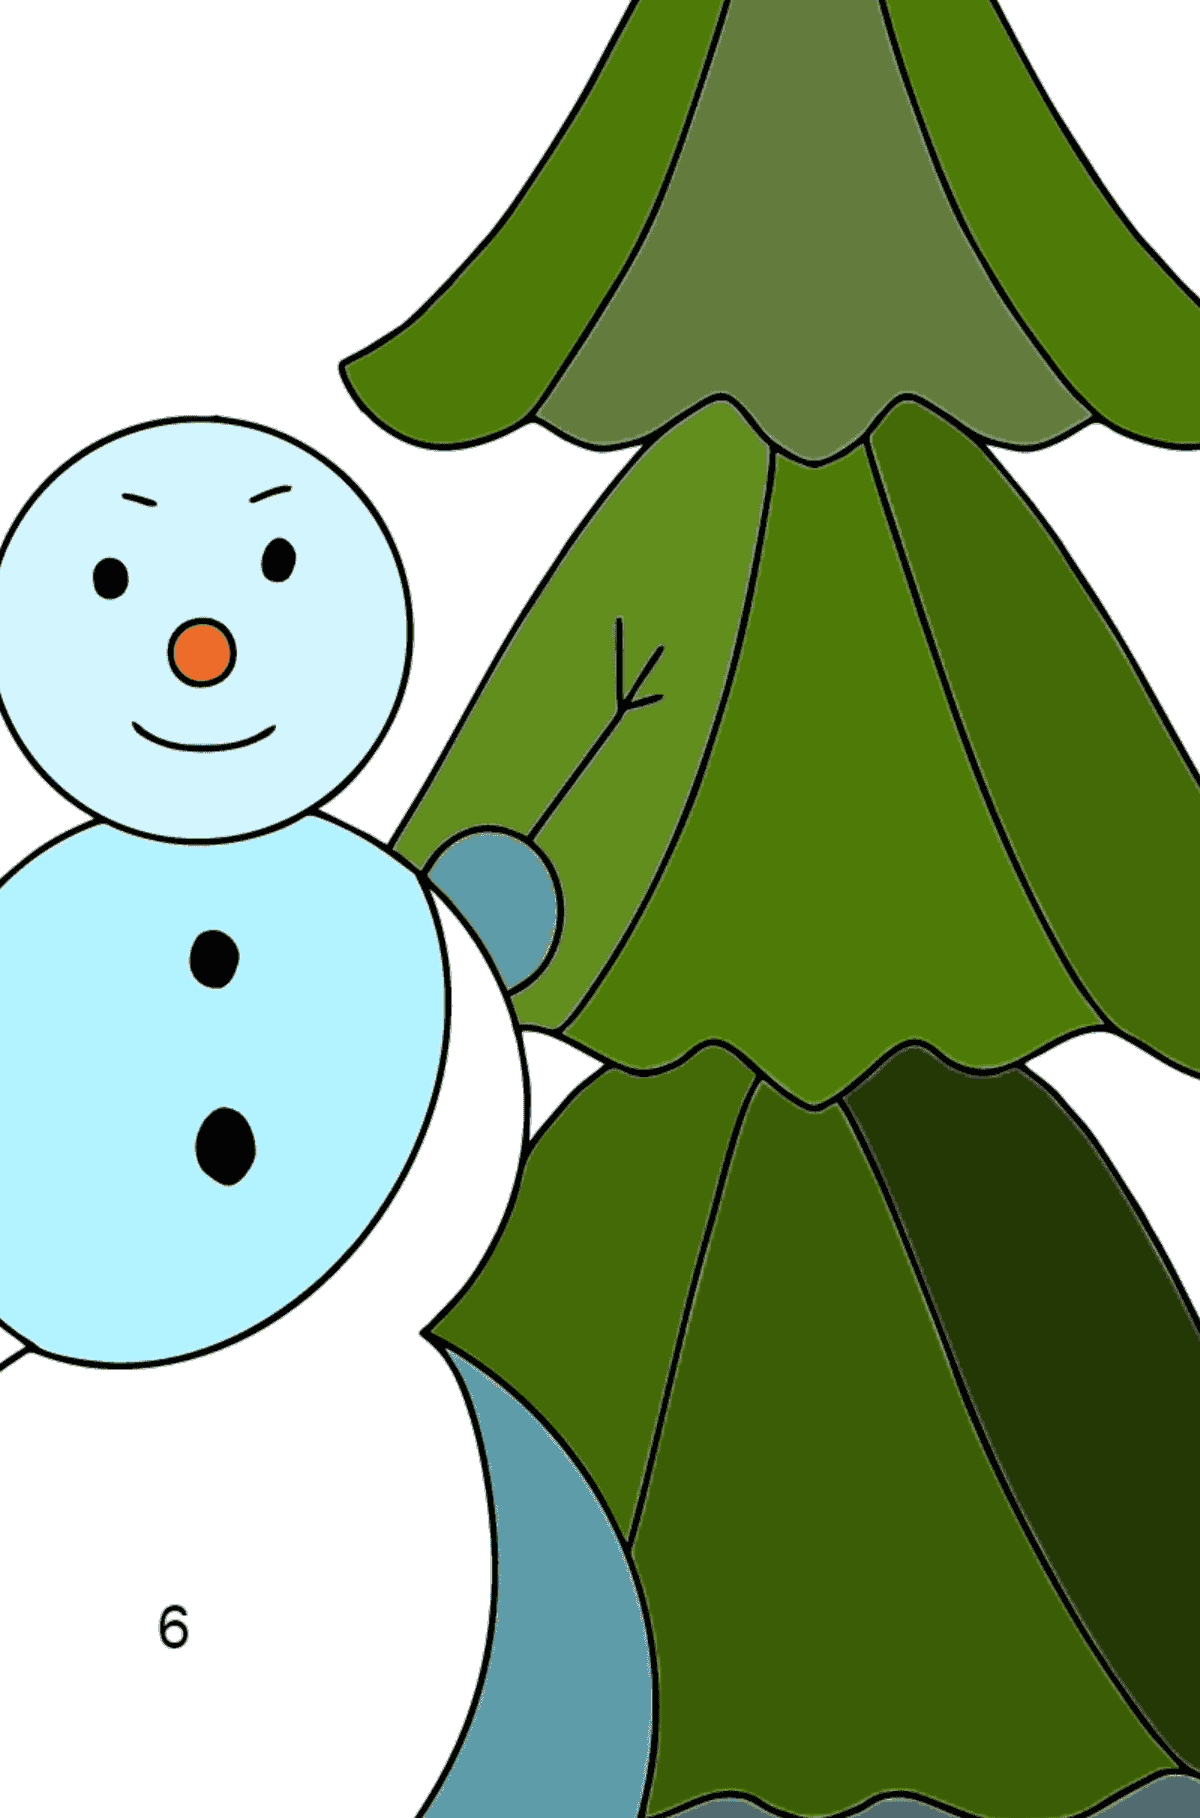 Winter Coloring Page - A Snowman with a Beautiful Christmas Tree for Children  - Color by Number